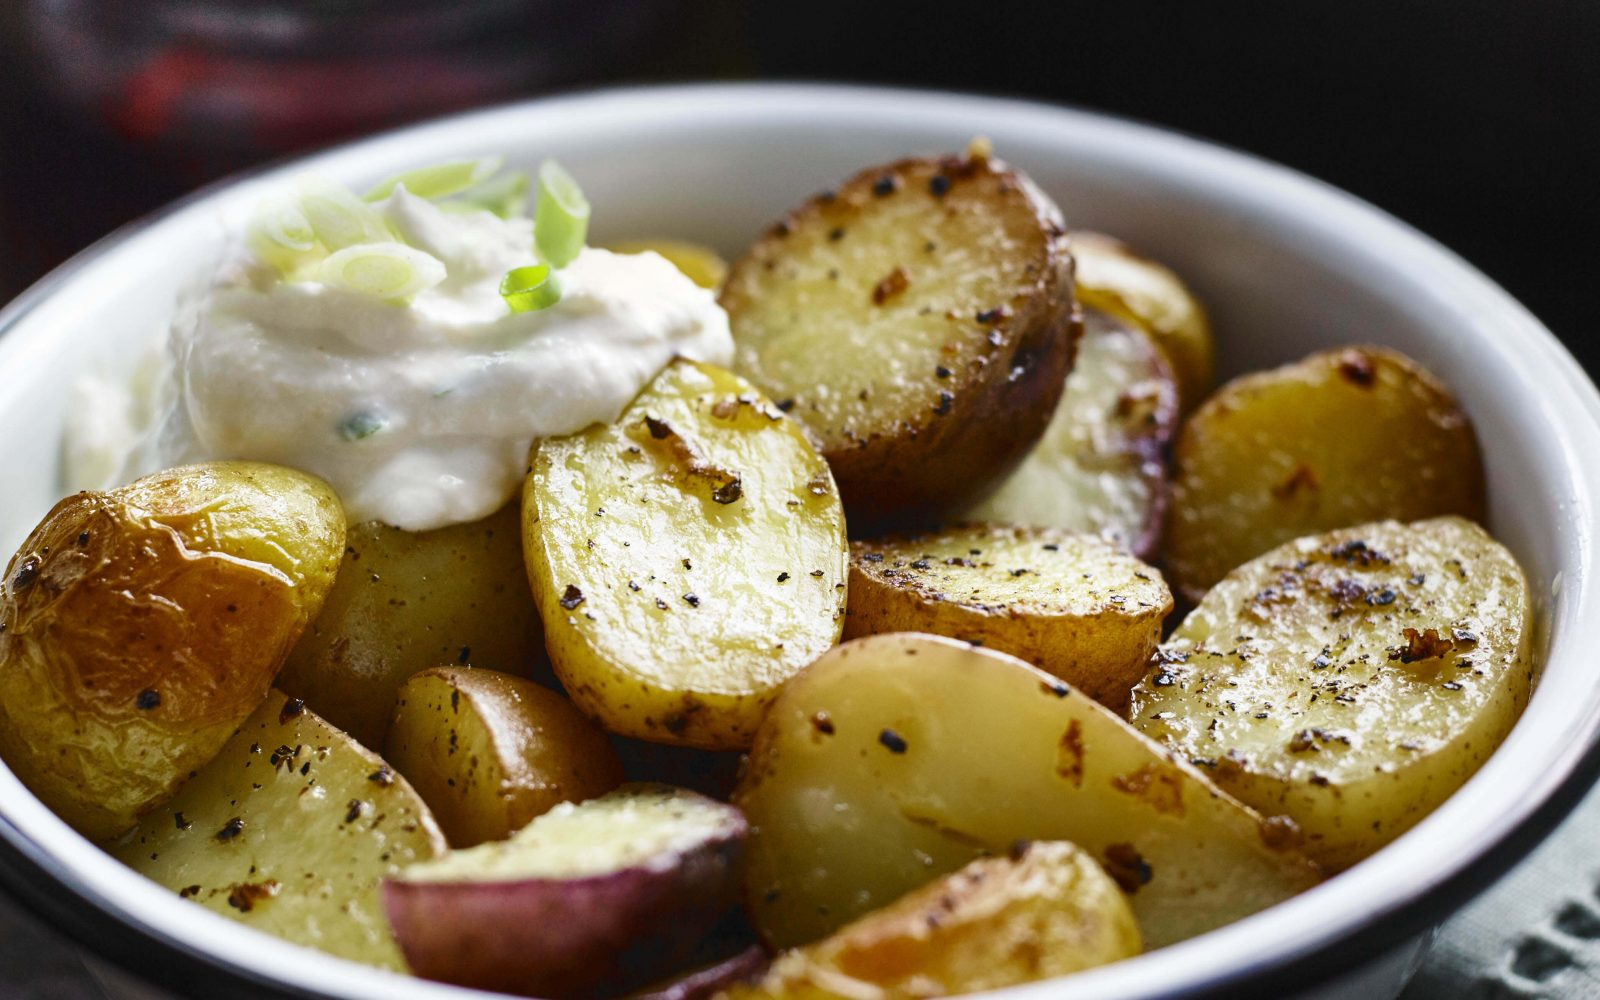 Barbecued Potatoes with Horseradish Sour Cream